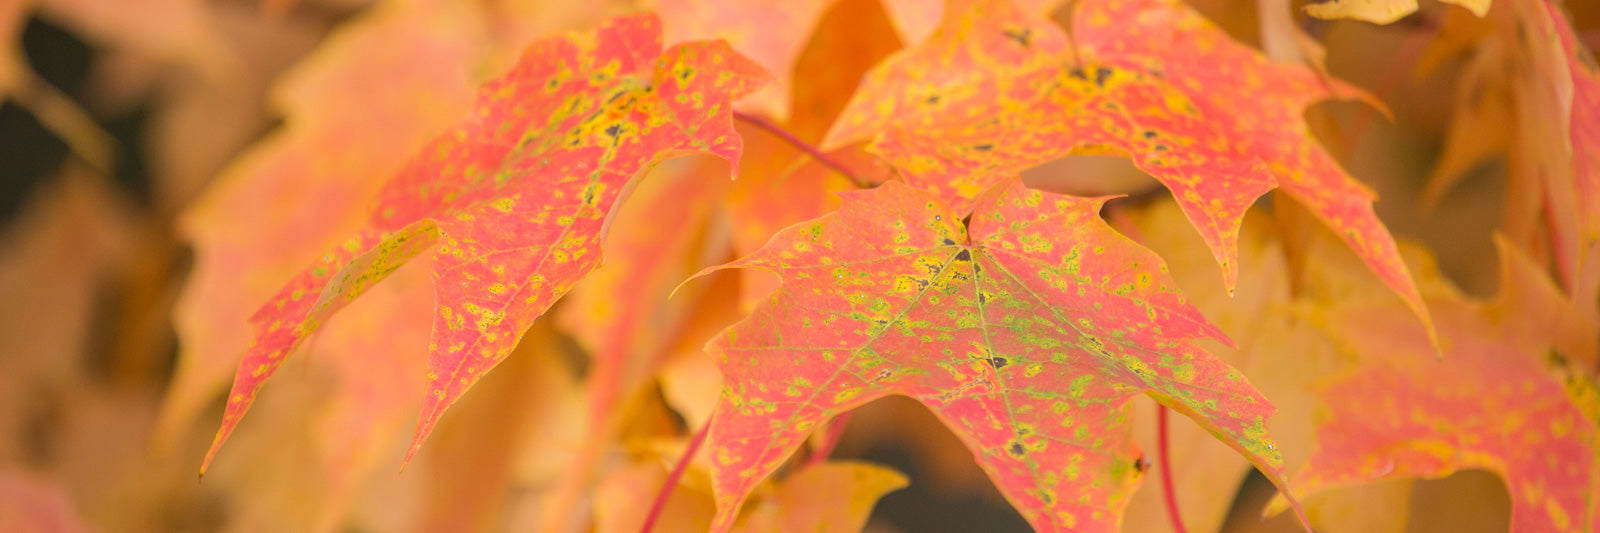 Maple Leaves Fall Foliage